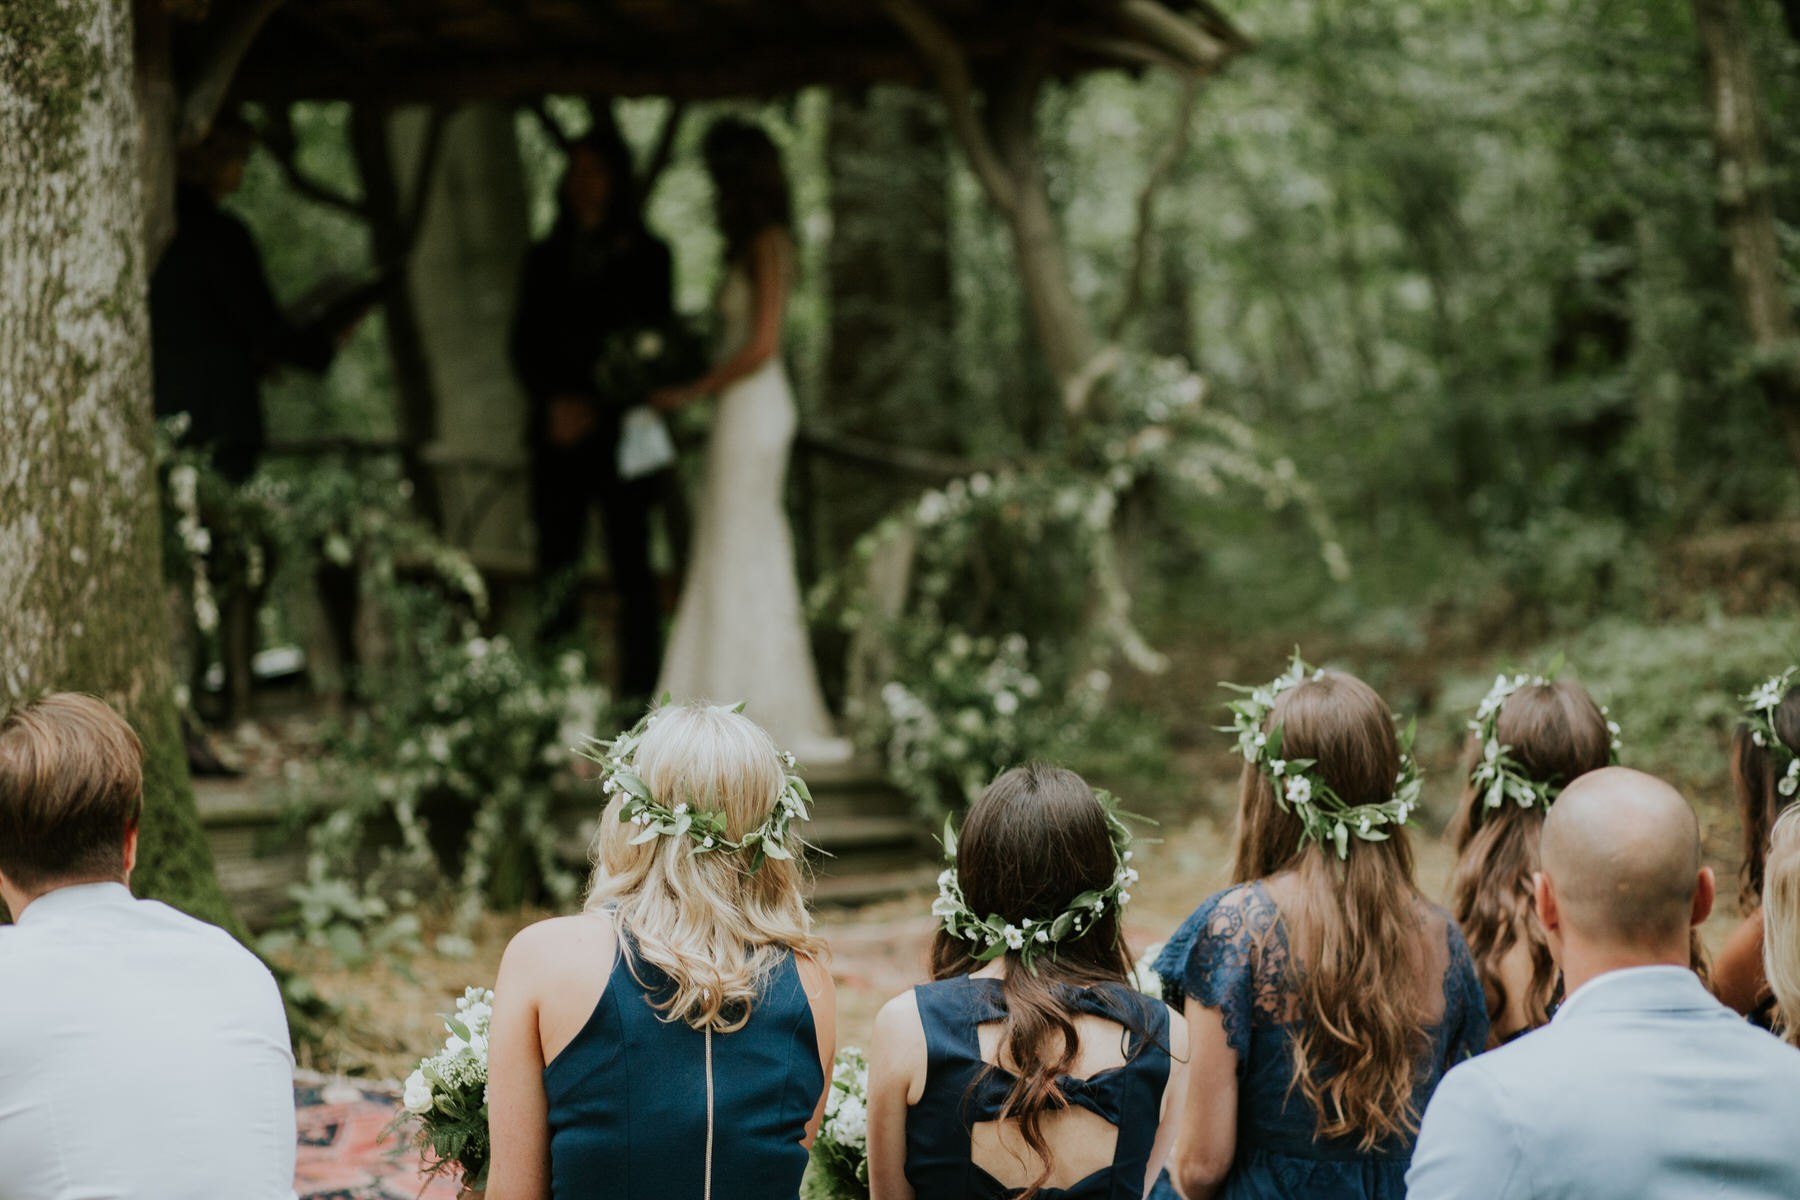 30 guests looking on bride groom woodland ceremony.jpg